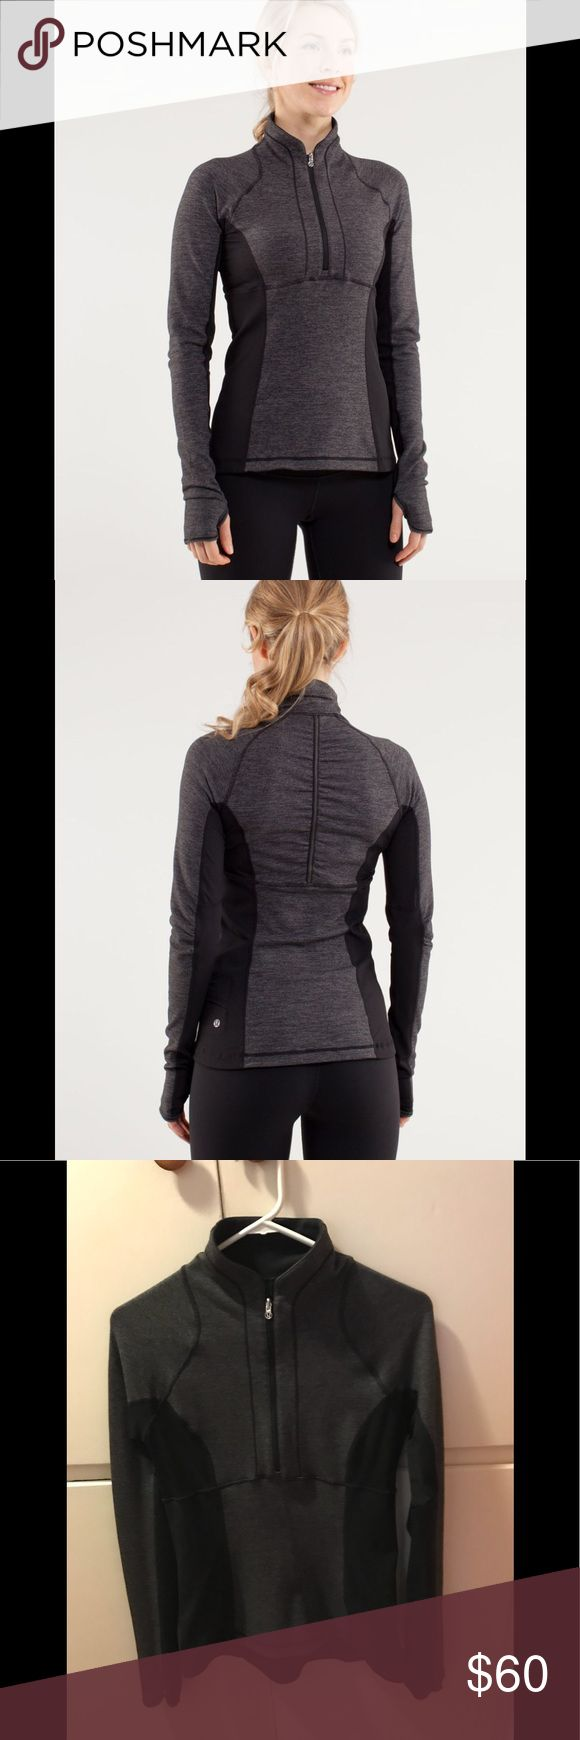 Lululemon Run: Switch Back 1/2 Zip Reversible pullover in black/wee stripe black heathered black. No rip tag but is a 6. Pre-loved but in great condition, always washed in cold and hung to dry. Feel free to ask for details or more photos. First two photos stock. Price will hold pretty firm for at least a couple of weeks. lululemon athletica Tops